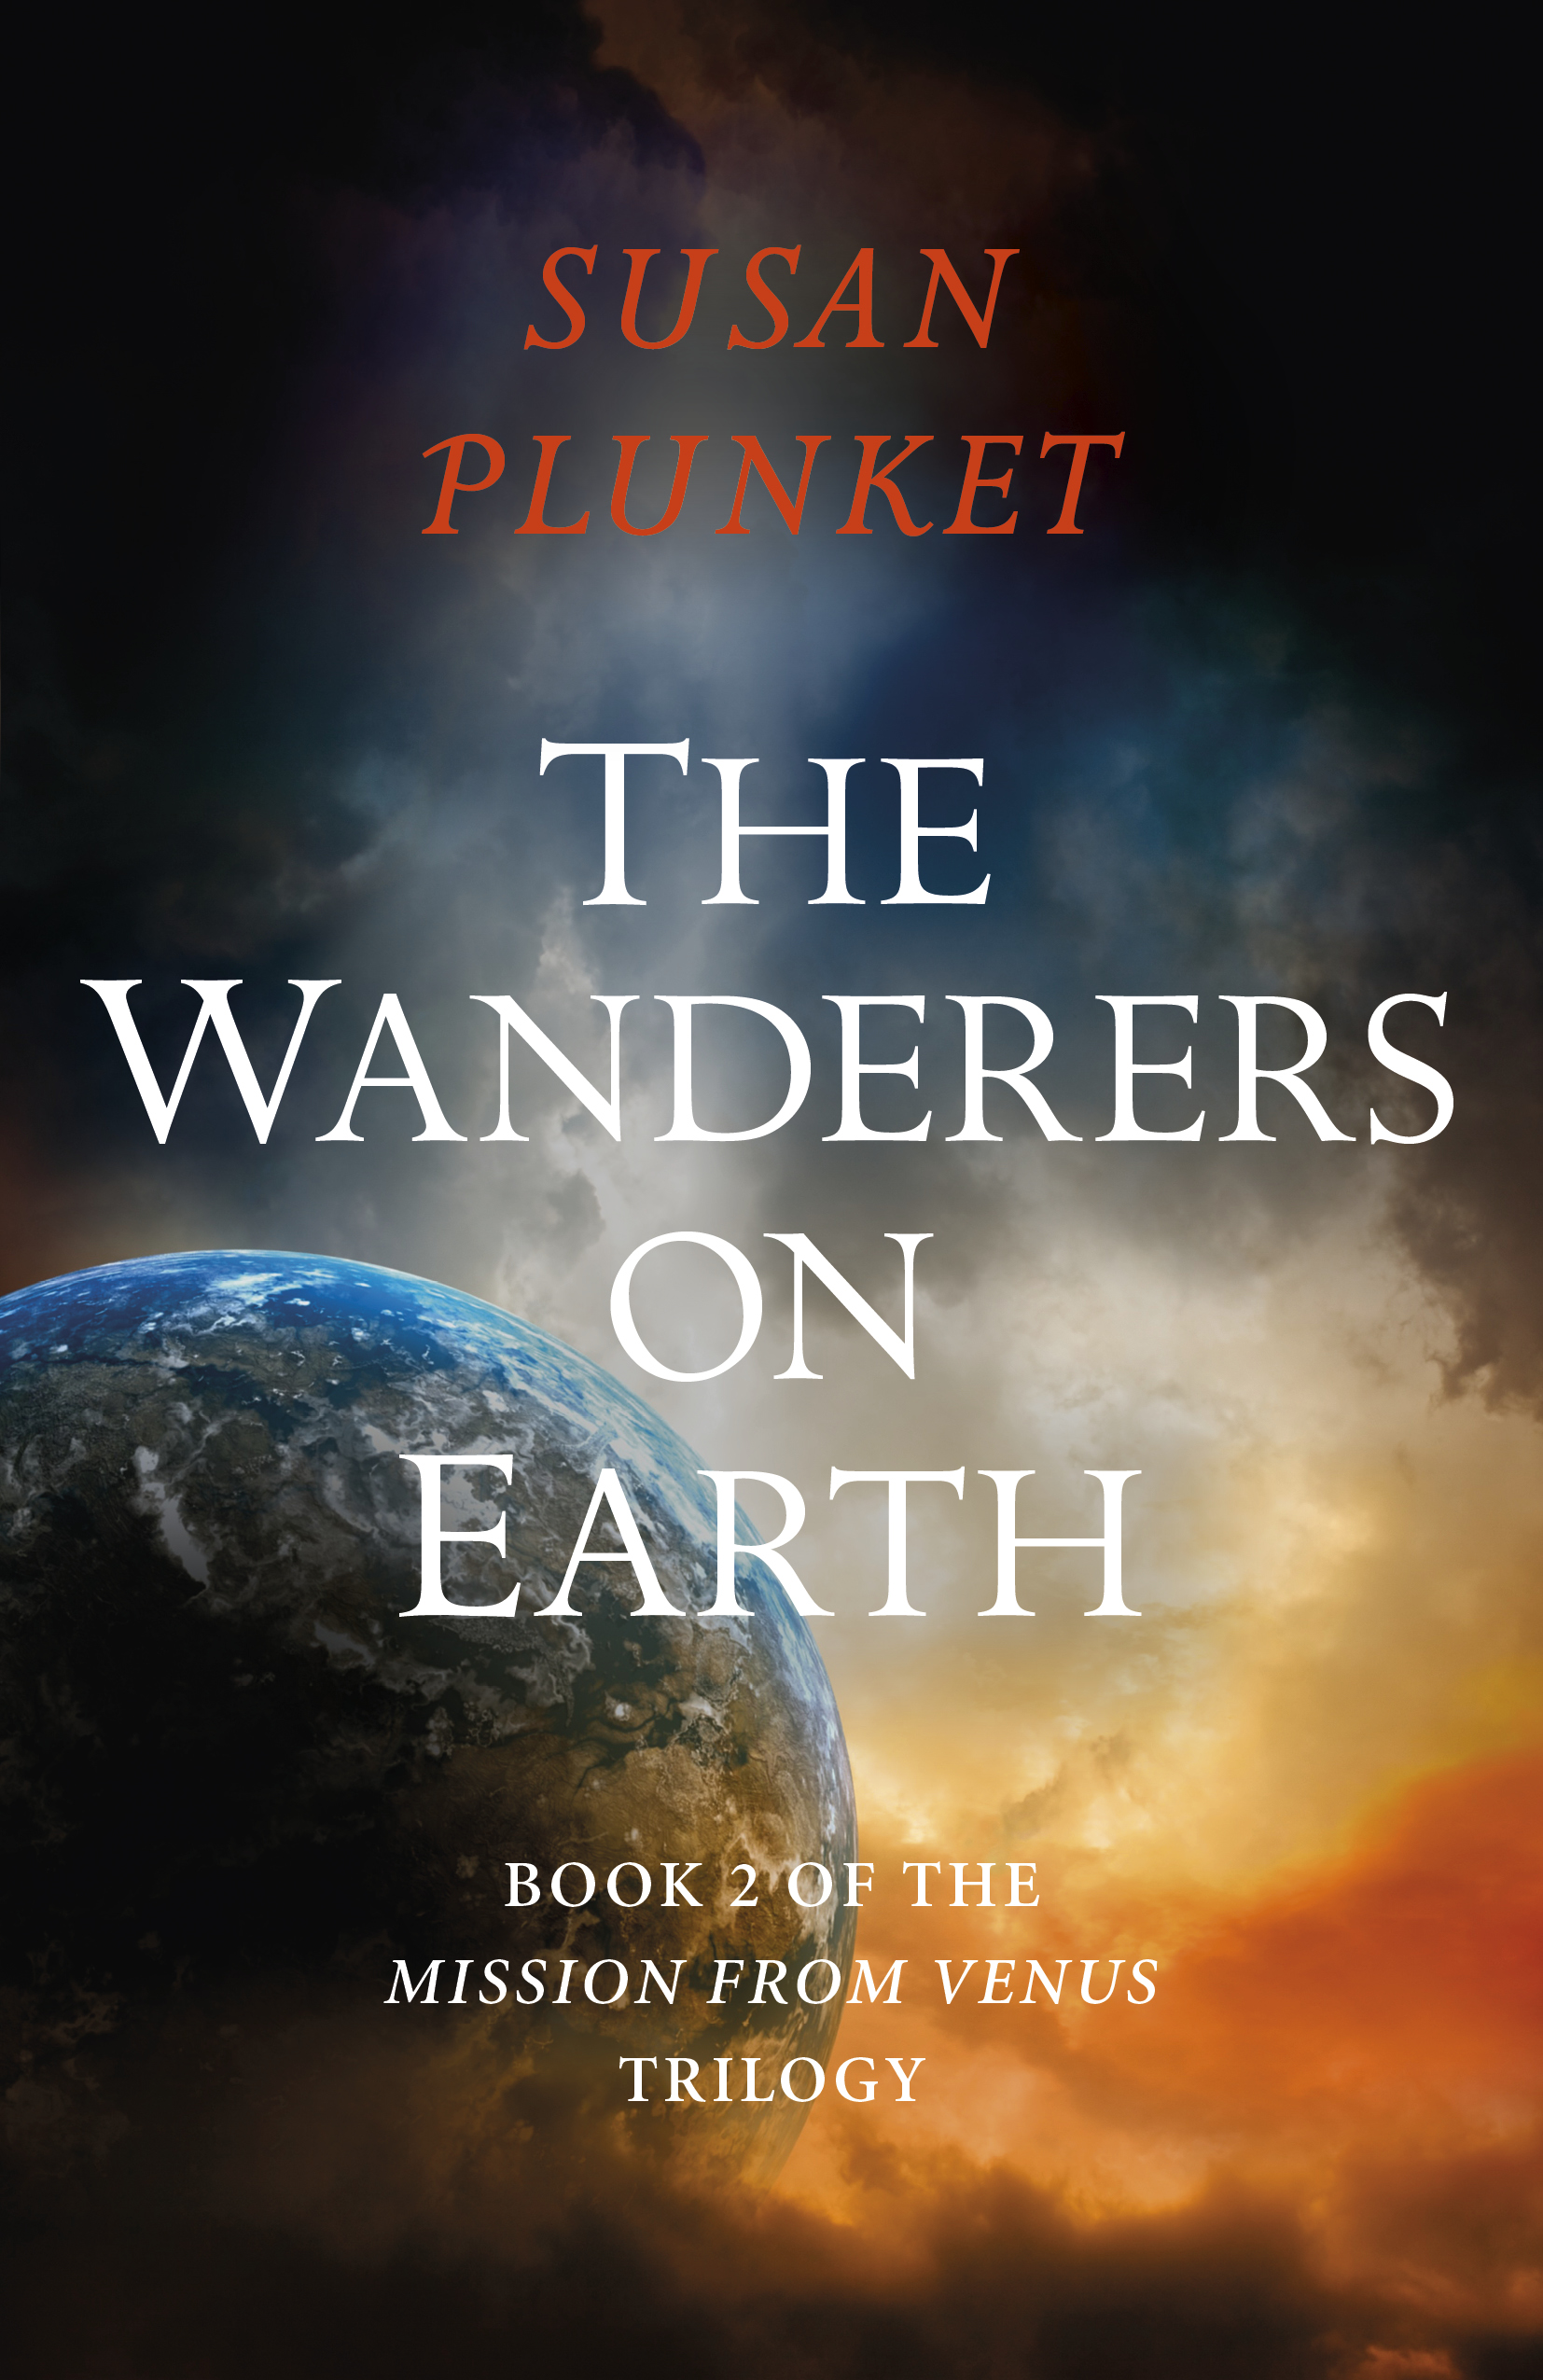 [PDF] [EPUB] The Wanderers on Earth (Mission From Venus trilogy, Book Two) Download by Susan Plunket